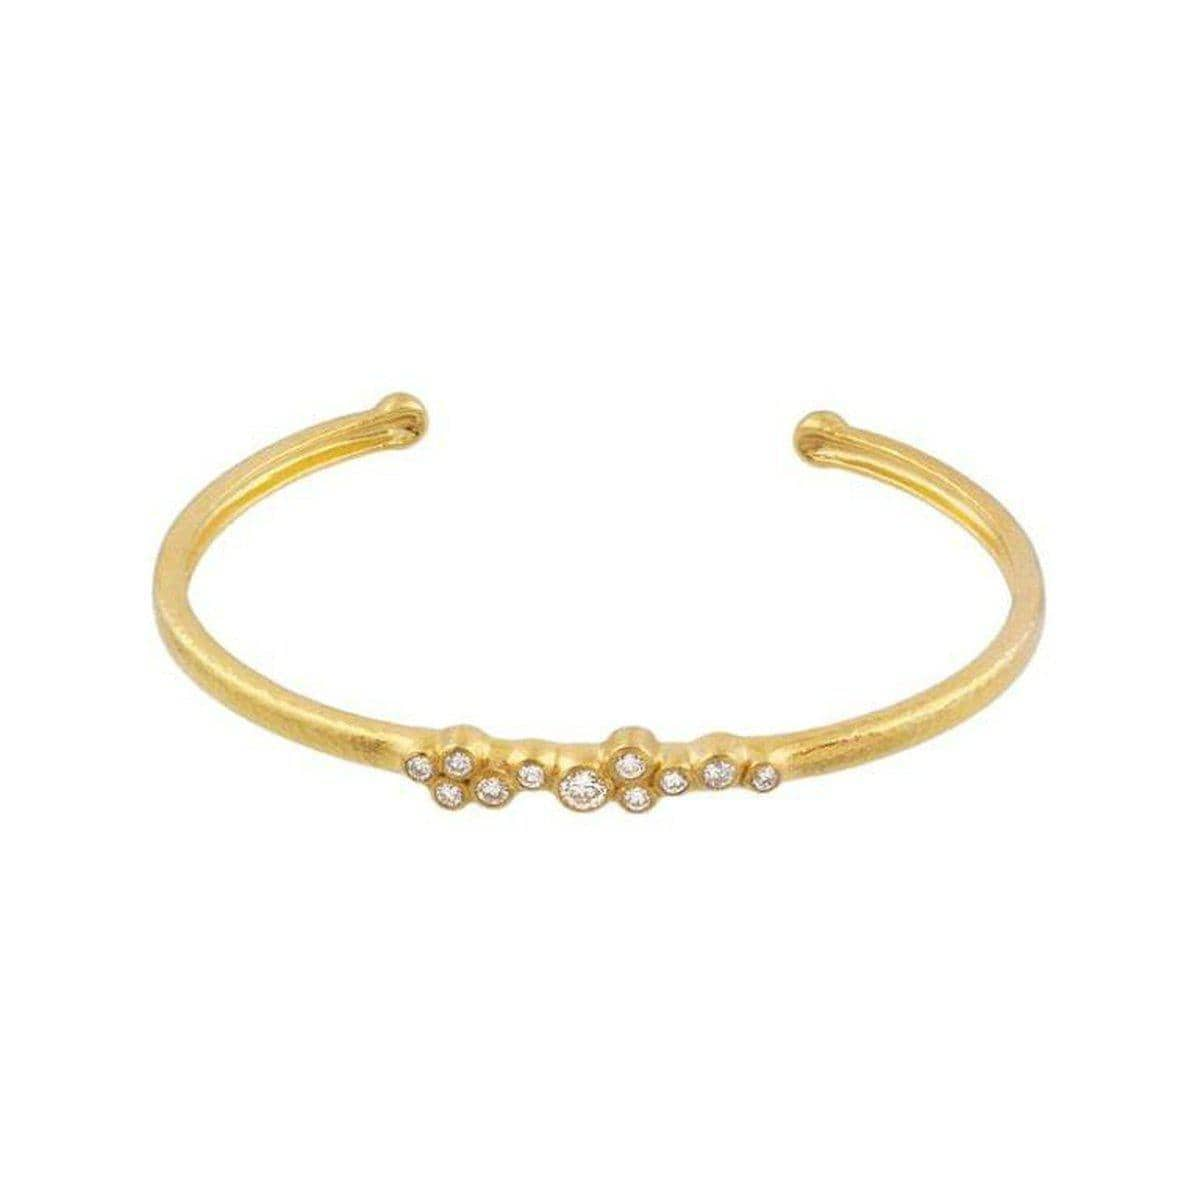 Pointelle 22K Gold White Diamond Bracelet - CB-SCTDI-11DI-NV-GURHAN-Renee Taylor Gallery